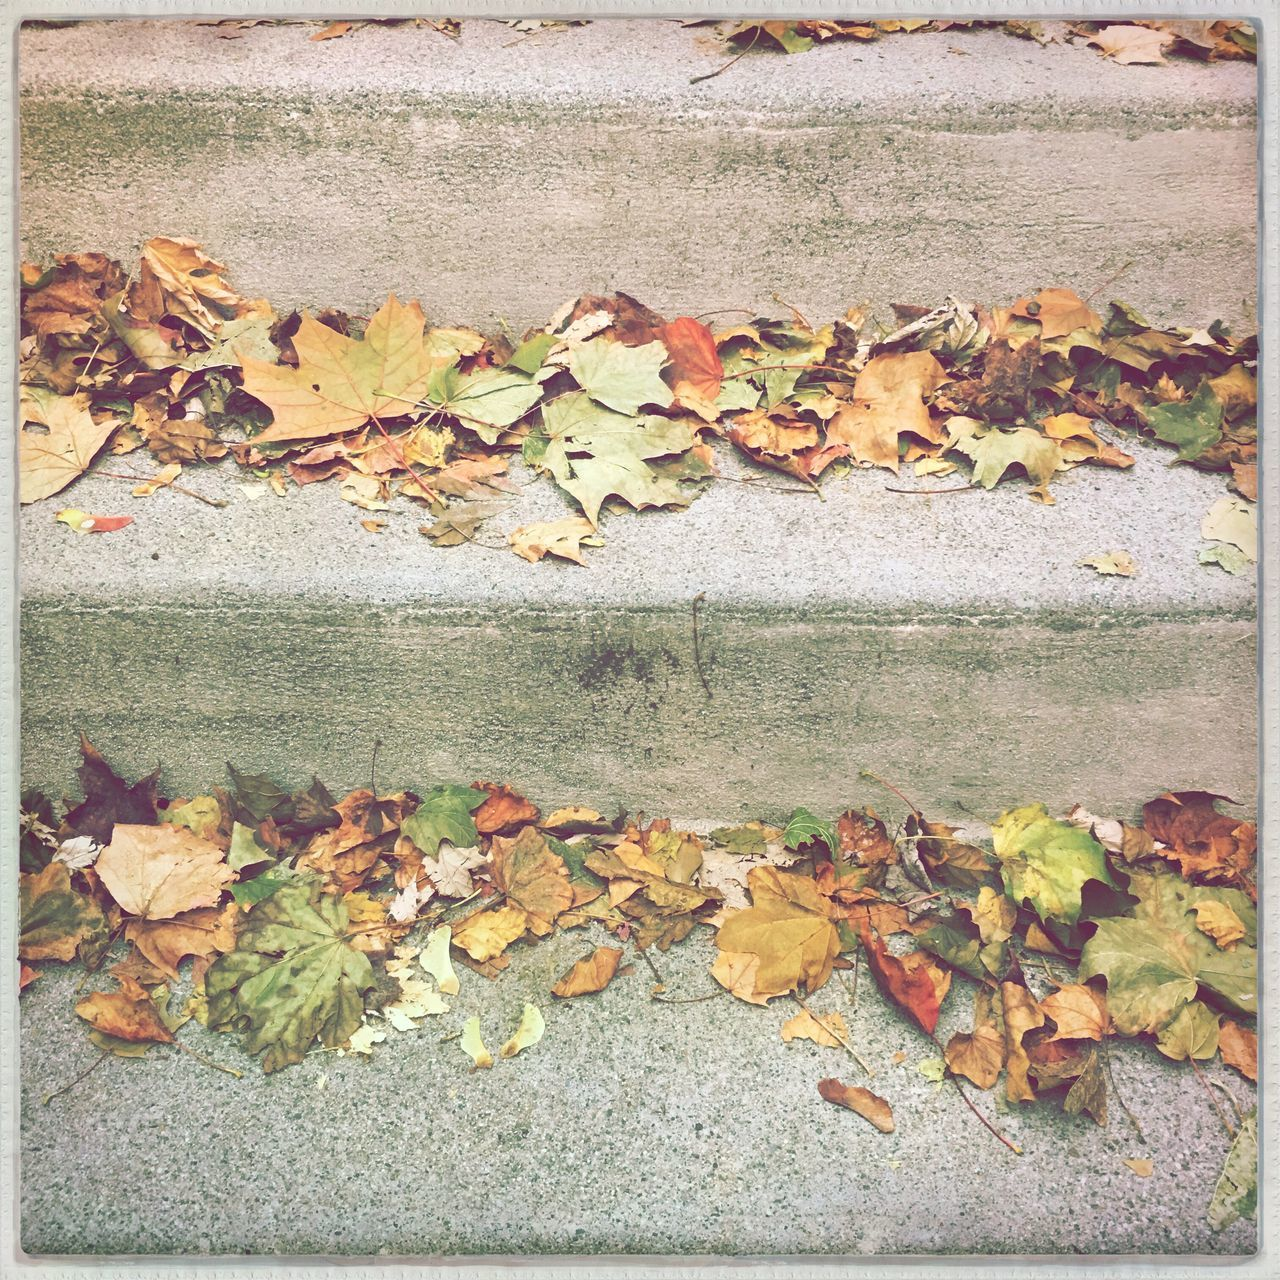 change, autumn, leaf, dry, leaves, fallen, maple leaf, nature, maple, fall, outdoors, day, fallen leaf, no people, abundance, close-up, beauty in nature, fragility